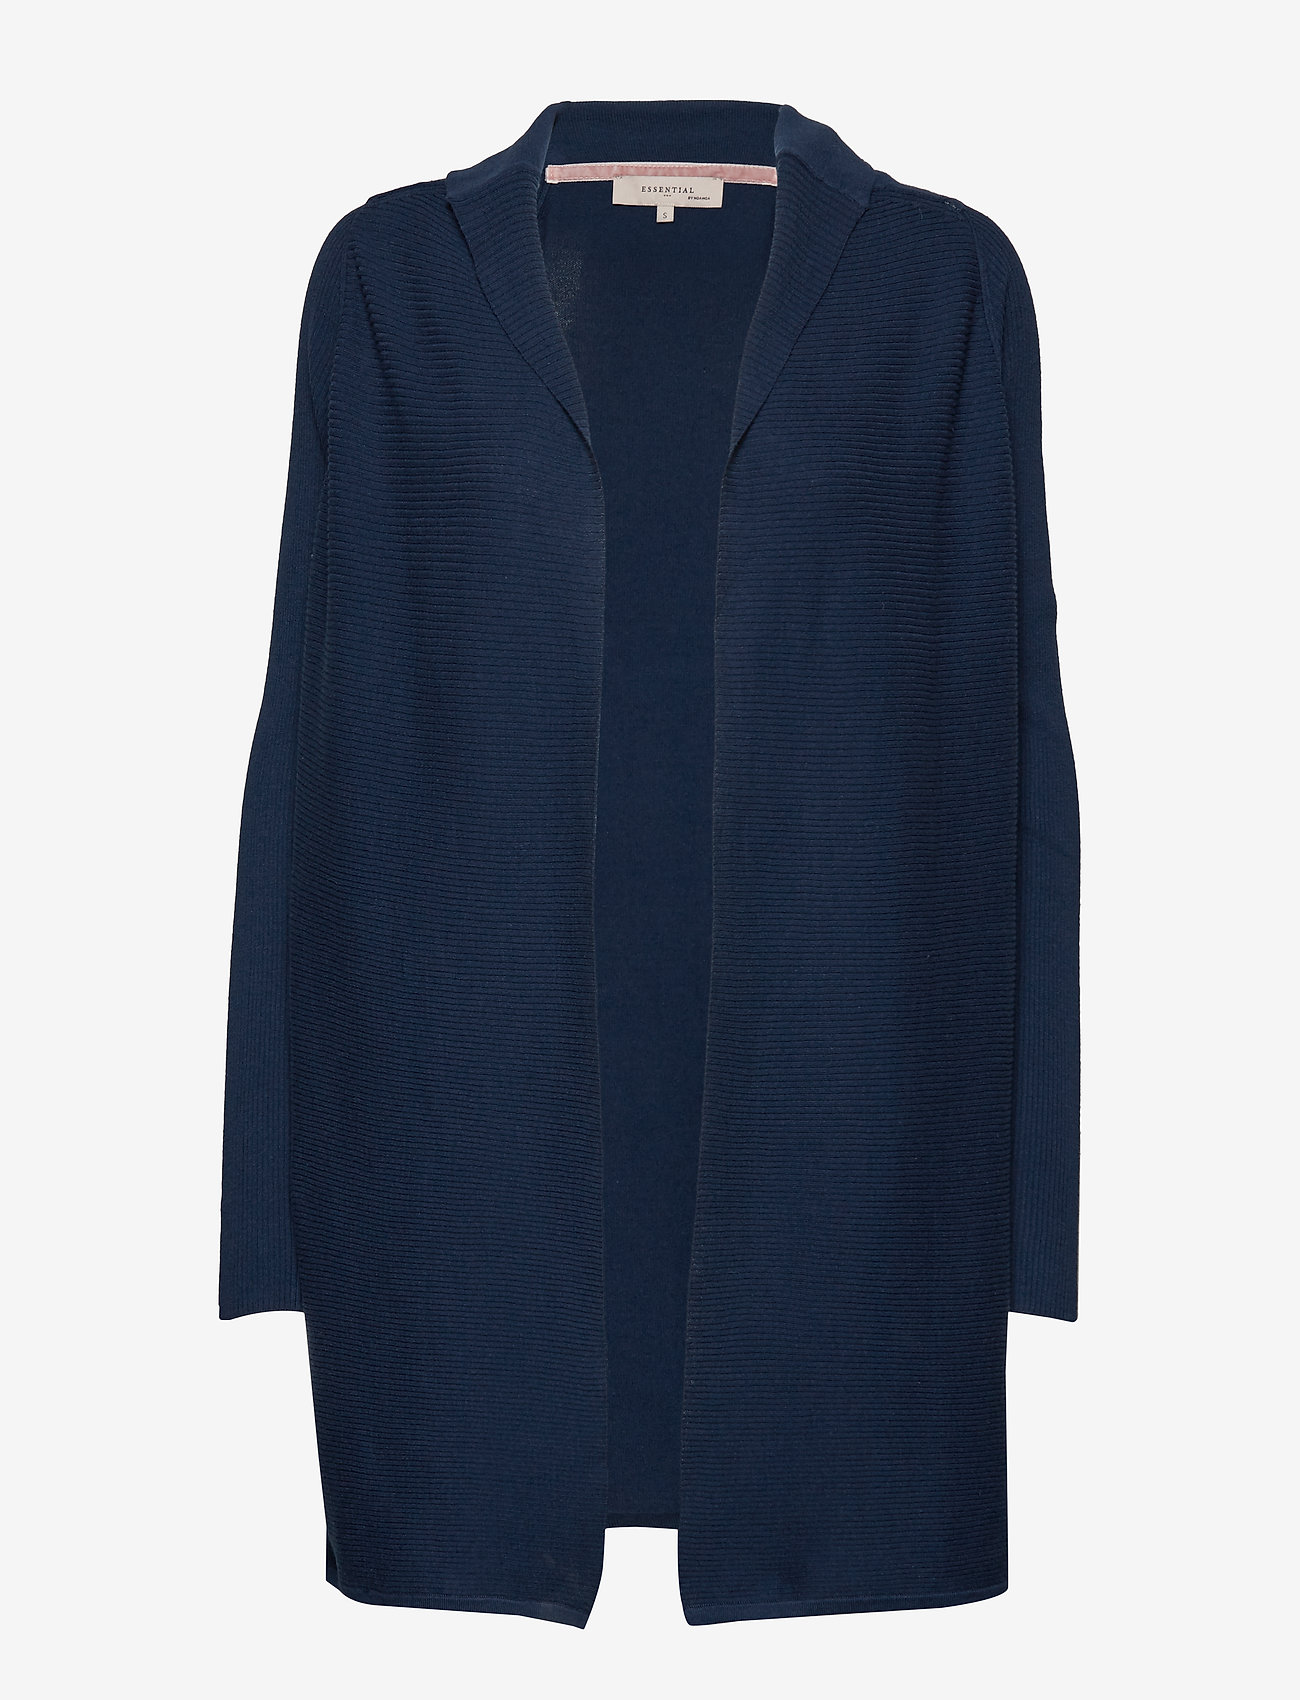 Noa Noa - Cardigan - vesten - dress blues - 0